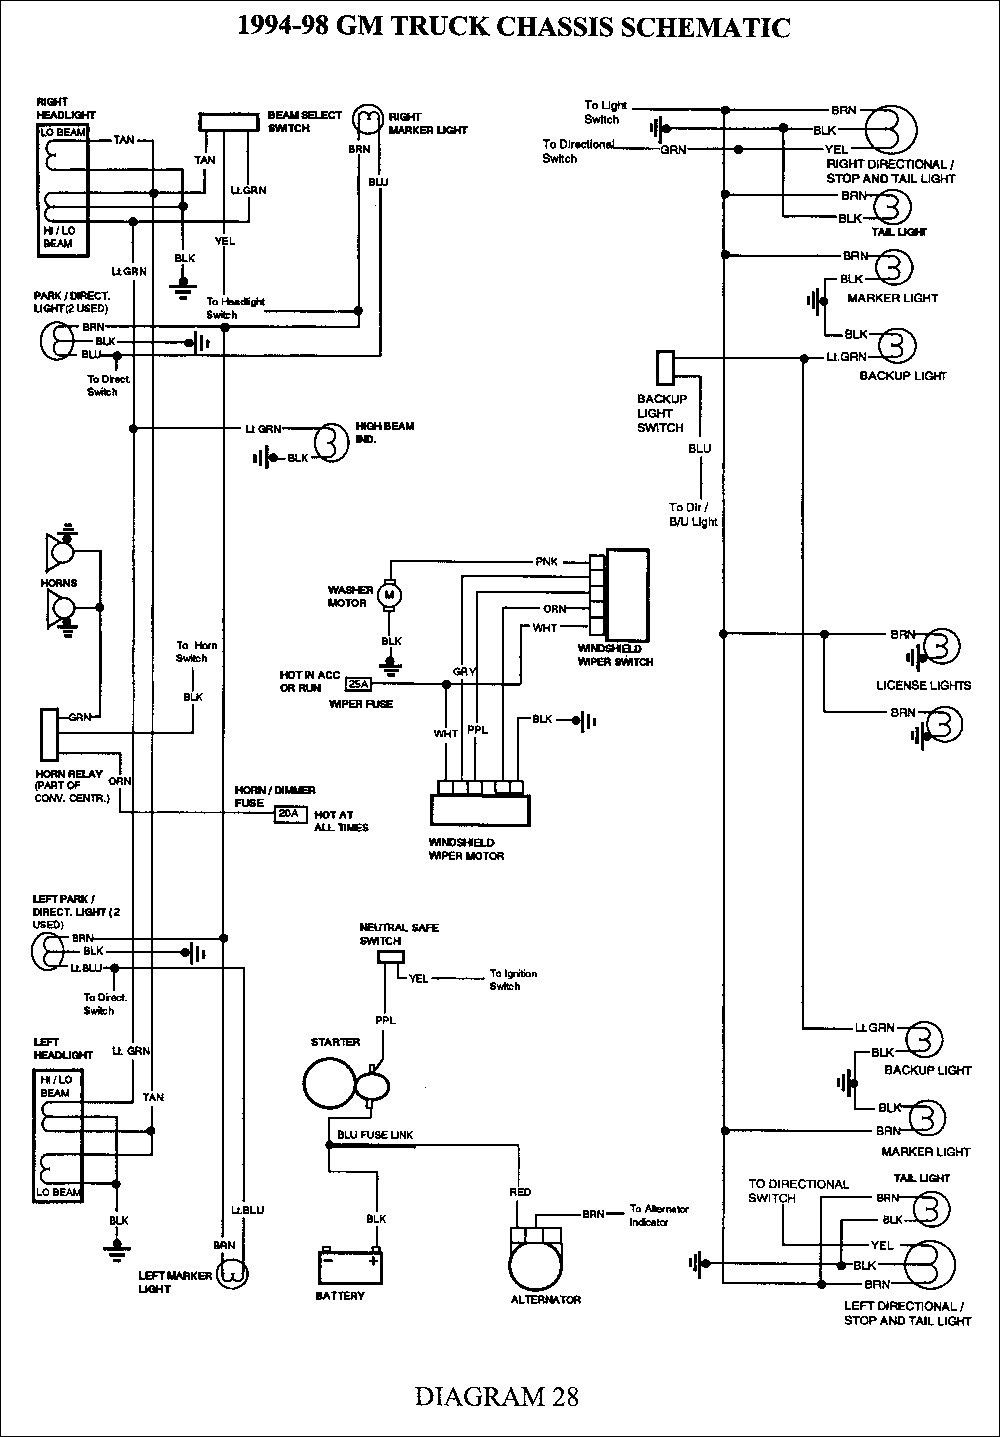 [DIAGRAM_09CH]  35 Ford Head Light Switch Wiring Diagram - bookingritzcarlton.info | Chevy  silverado, 2004 chevy silverado, 1998 chevy silverado | 05 Chevy Impala Ignition Switch Wiring Diagram |  | Pinterest